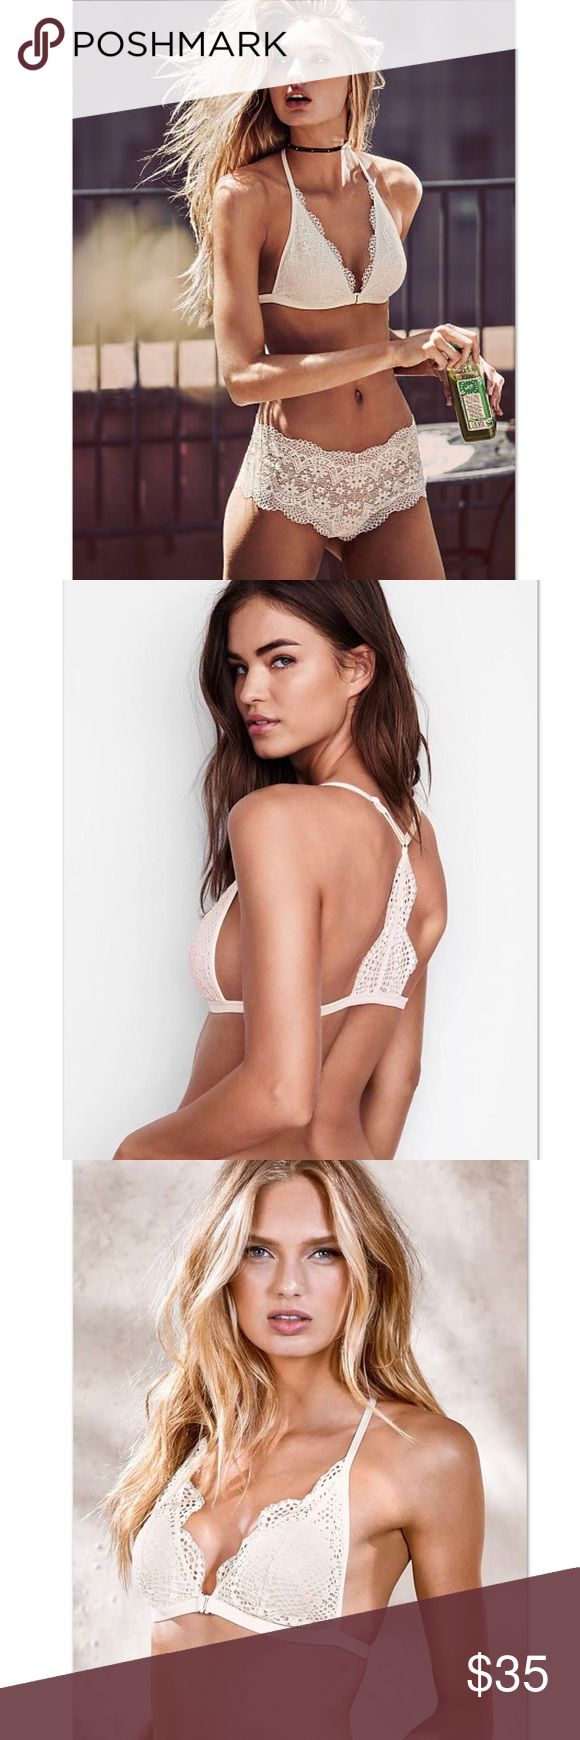 VS Front Close Crochet Lace Boho Bralette XL New in Package Size -XL Color - Coconut White Scalloped   A boho beauty underneath it all: with crochet lace in front and back and light padding when you want it.   Style tip: Show off under plunge fronts and open backs